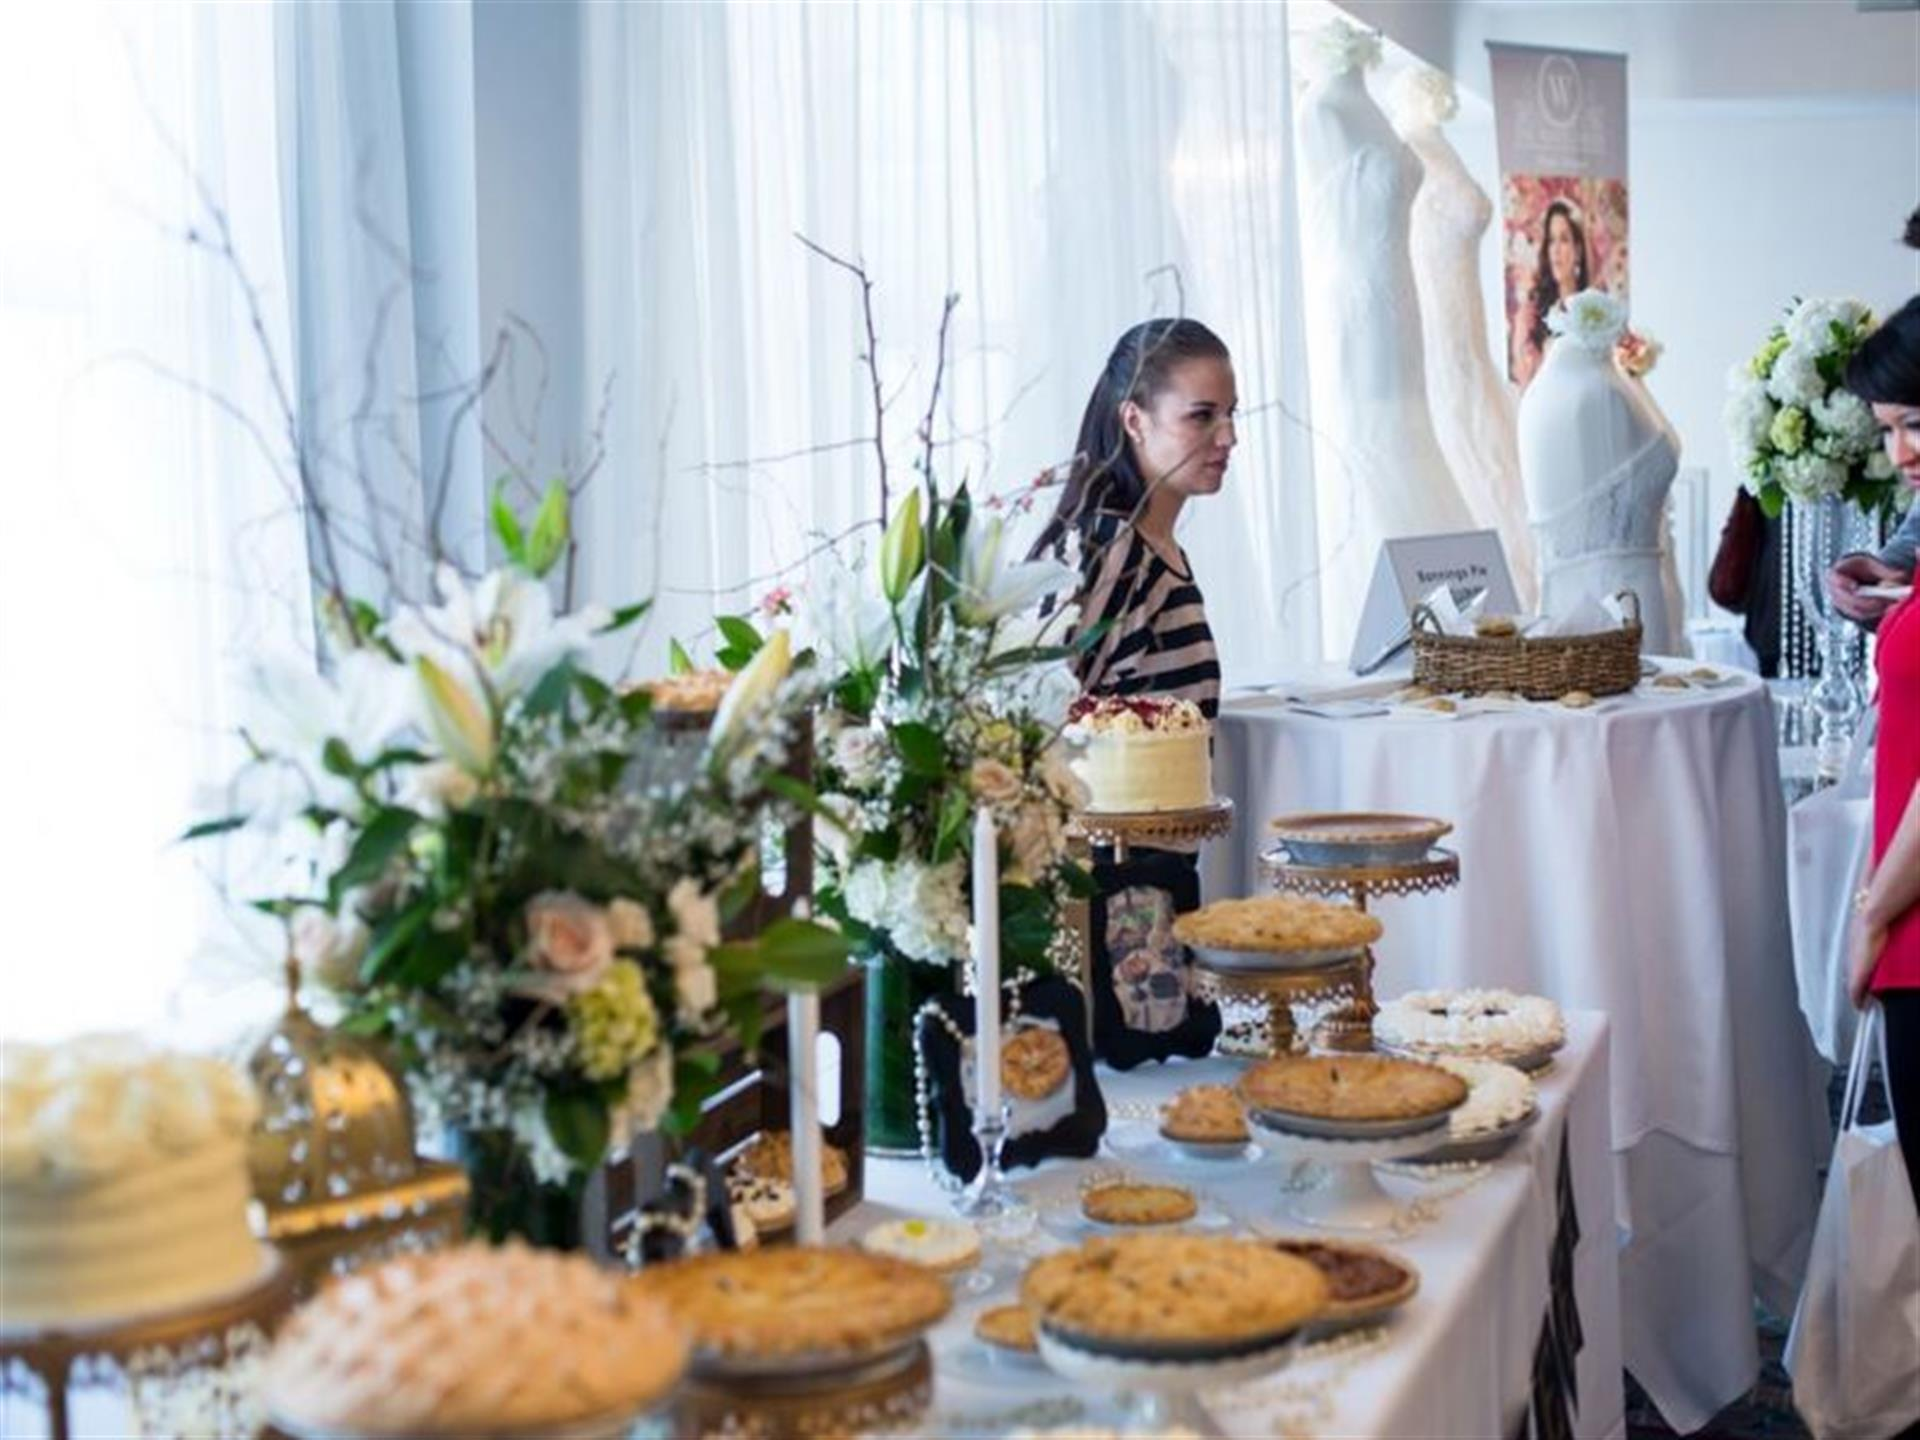 Woman standing at far end of table of decorative cakes and pies on display.